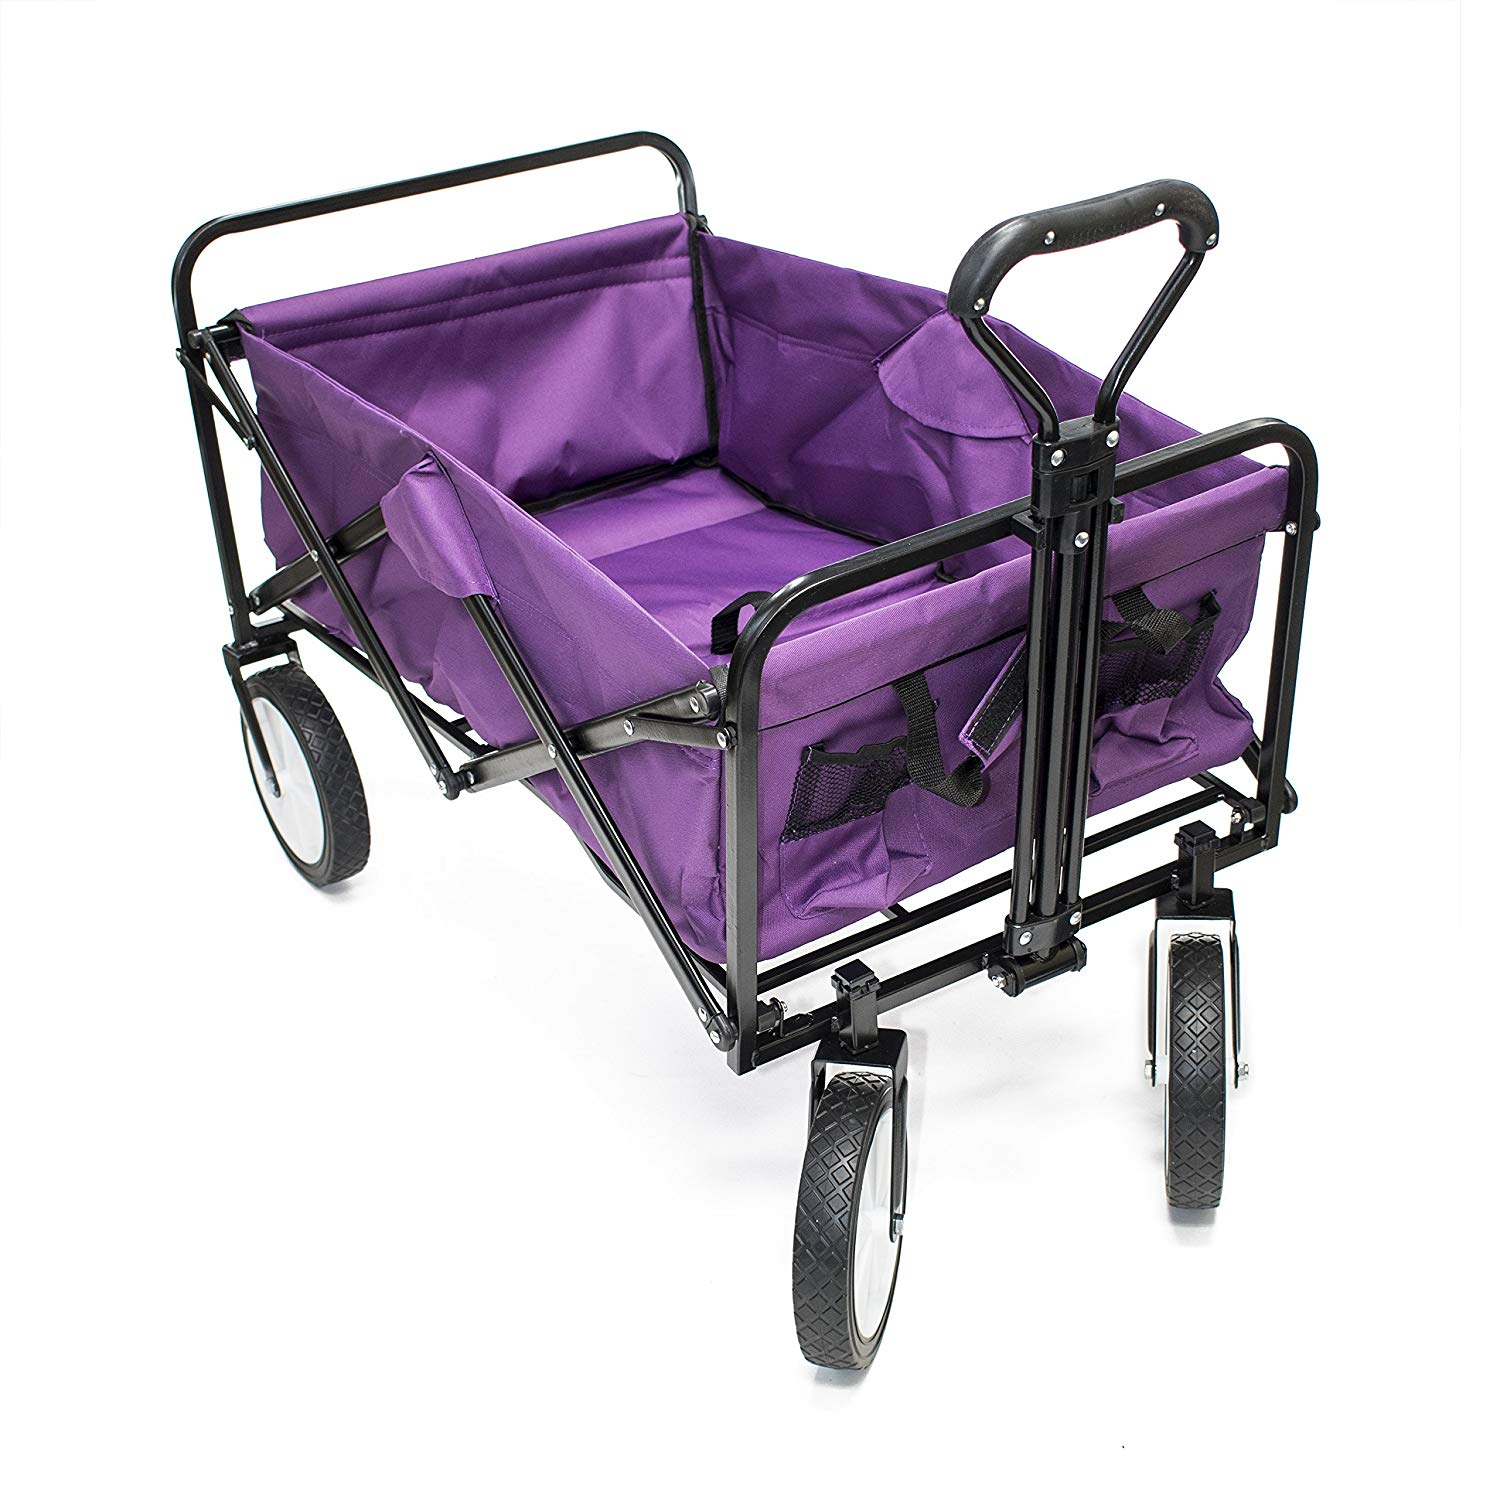 TC1012 Multipurpose Folding Utility Wagon with Adjustable Retractable Handle 35